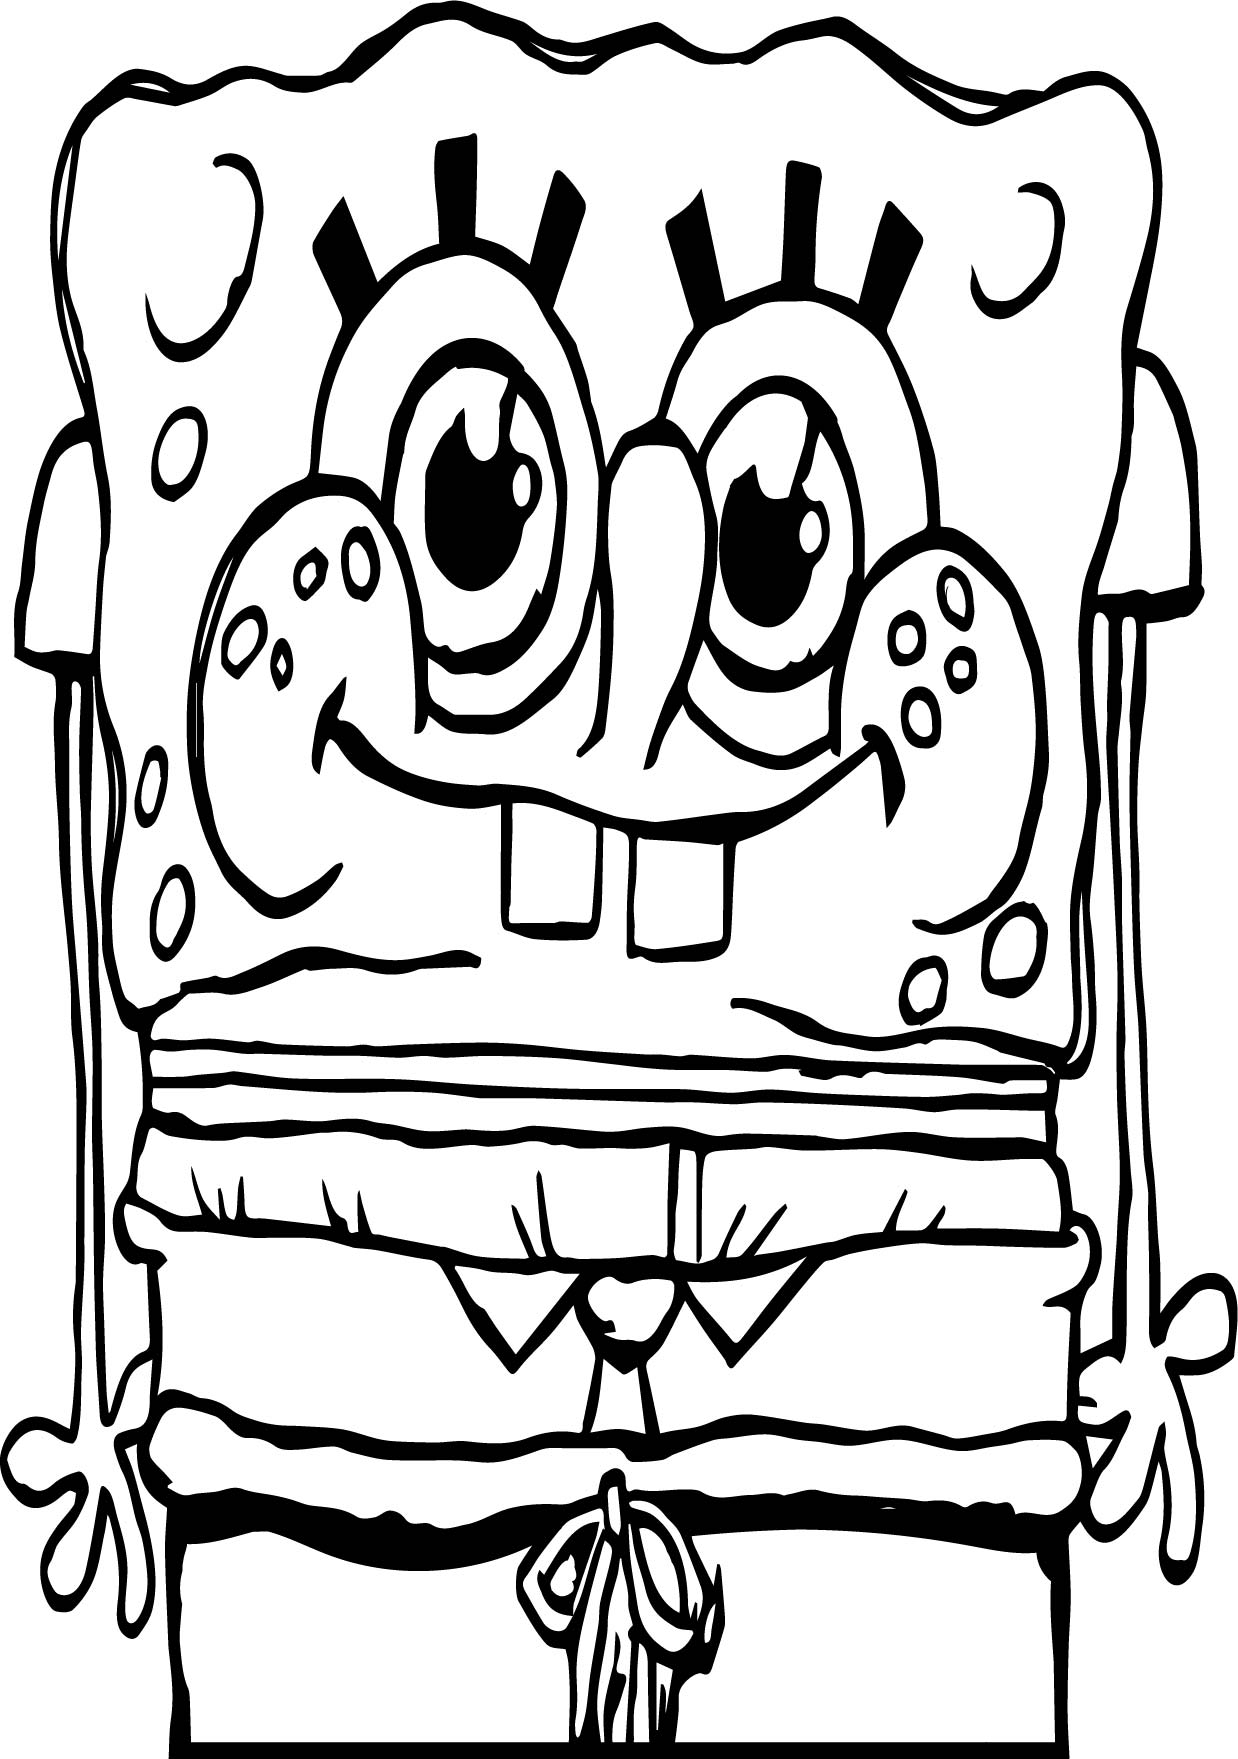 Cool Sunger Bob Underwater Coloring Page